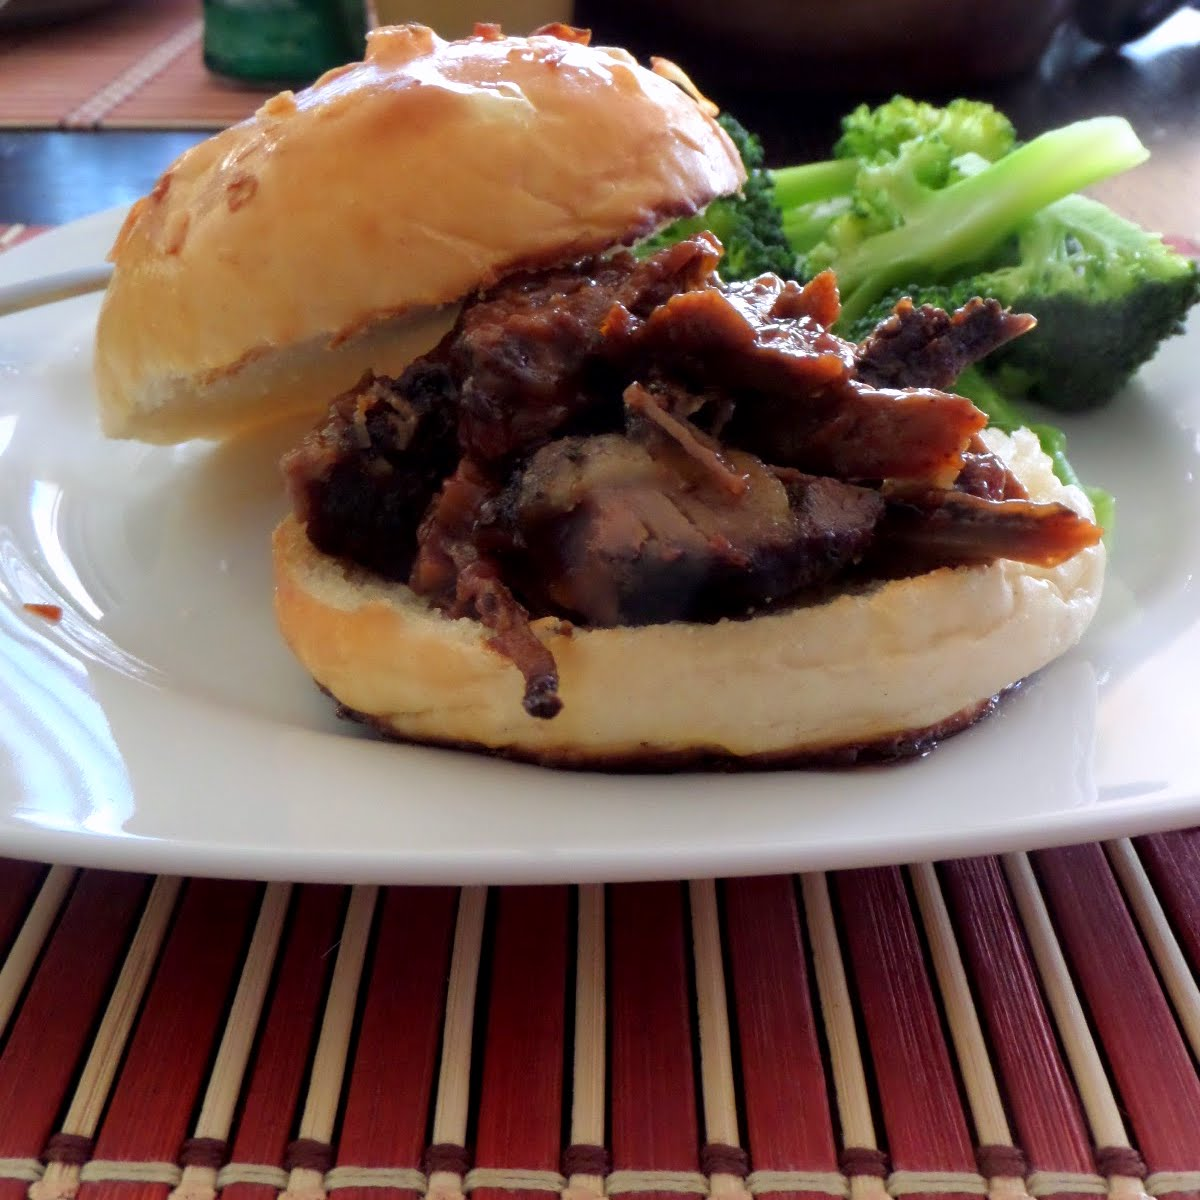 Barbecue Brisket Sandwiches:  Tender smoked brisket and barbecue sauce on a soft onion bun.